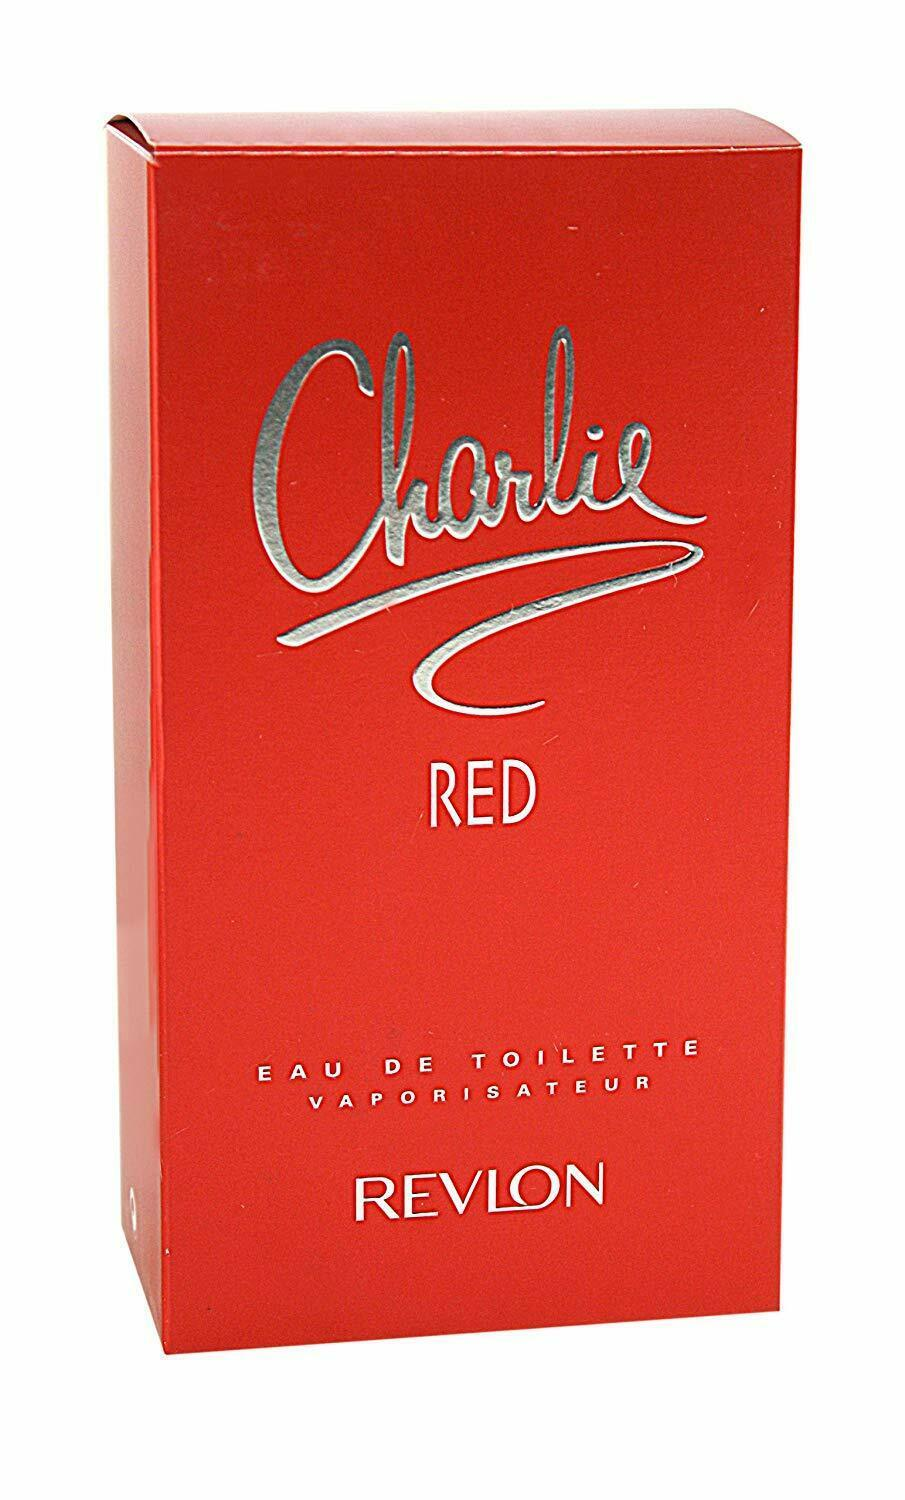 Revlon Charlie Red Perfume 100ml Olfactive family floral-floral-wood-for Women  image 2